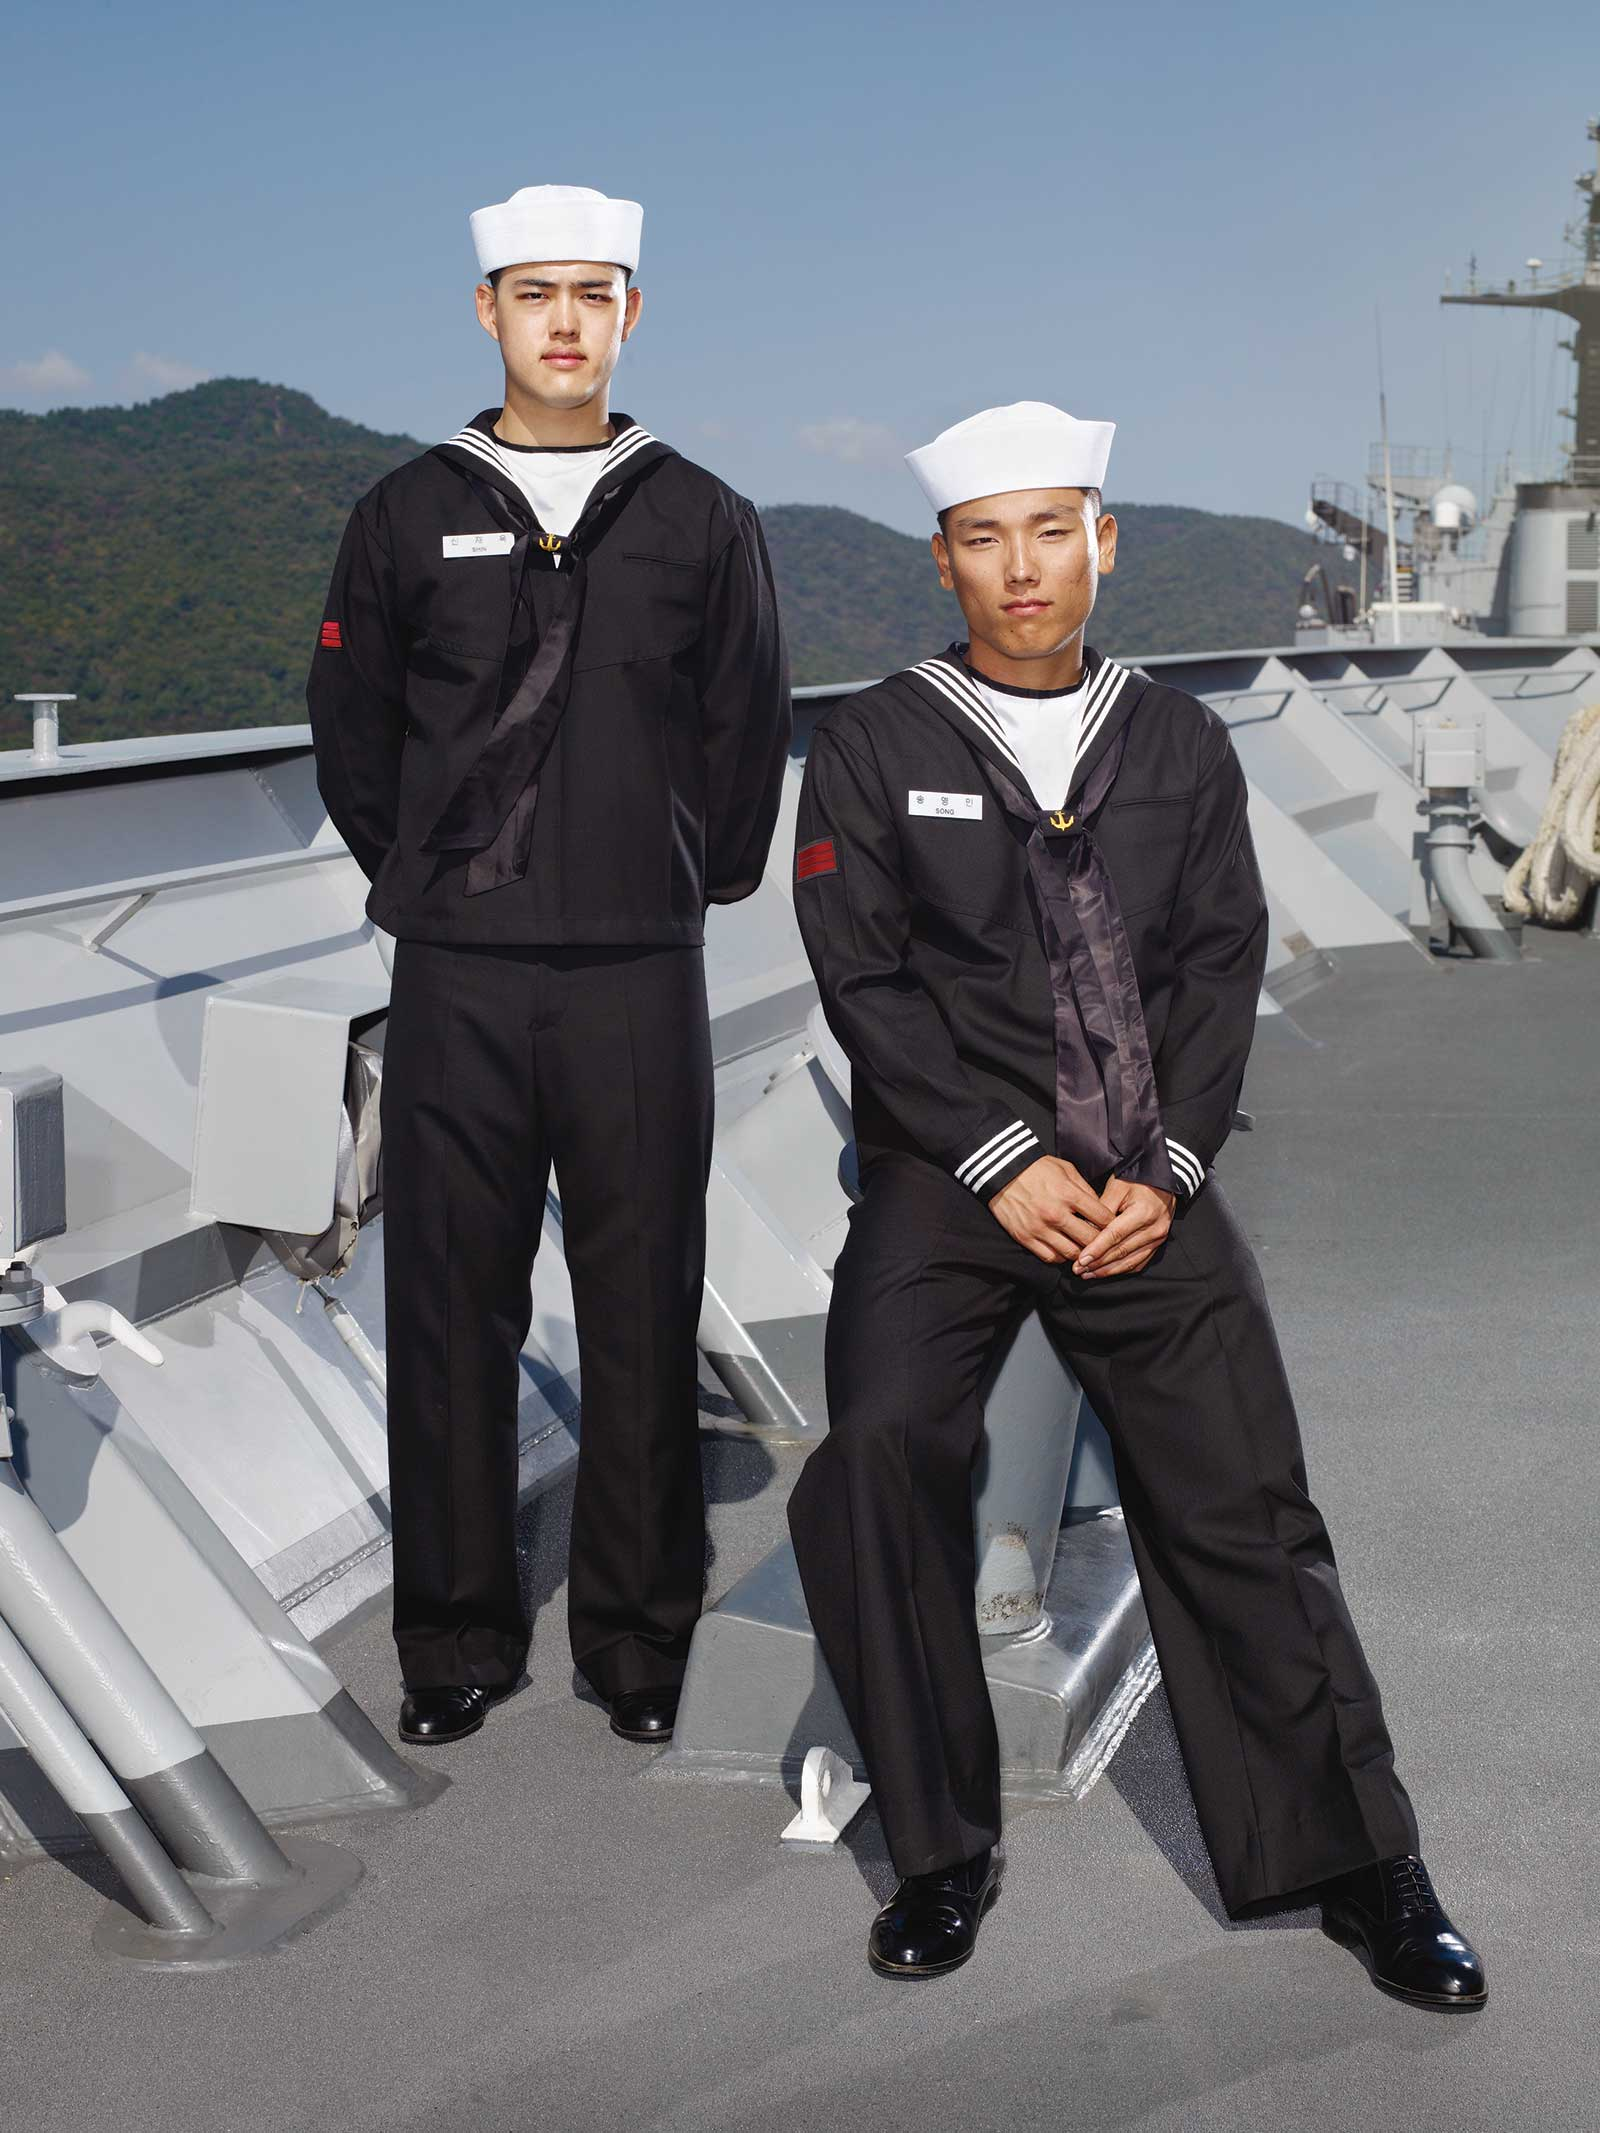 Heinkuhn OH,  Two navy corporals wearing black uniforms ,  October 2010 , 2010. 132 x 105cm, C Print. Image courtesy of the artist